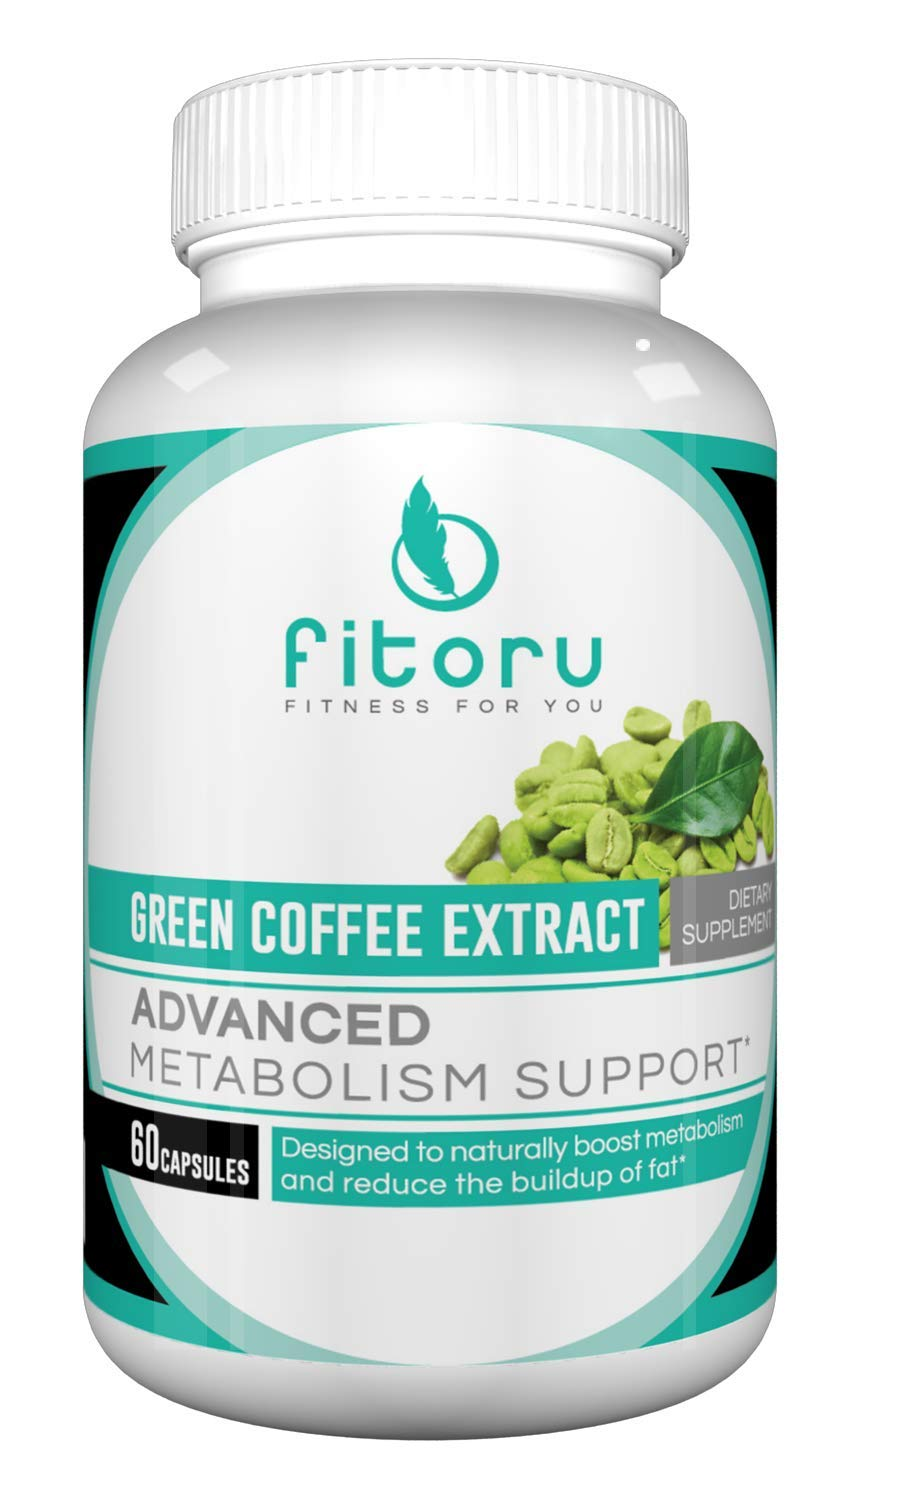 Fitoru Premium Green Coffee Bean Extract - 100% Natural and GMO Free with All-New Metabolism and Fat Loss Blend by Fitoru